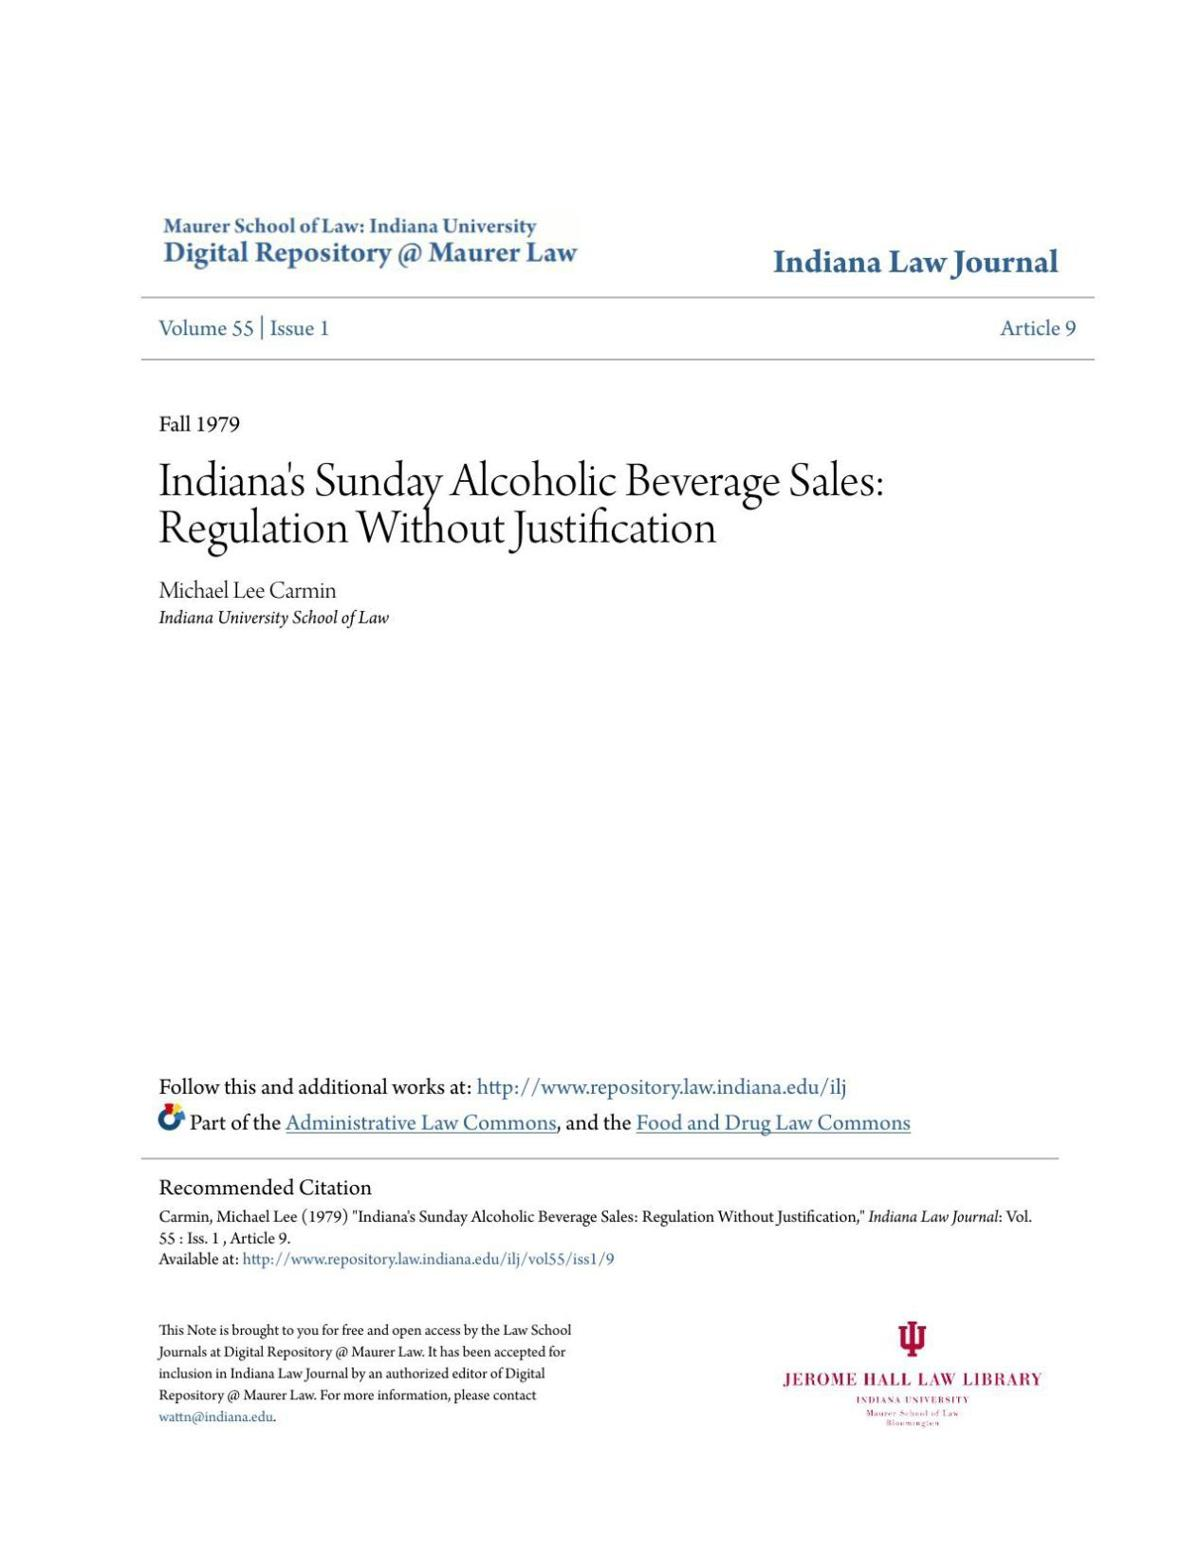 Indiana Law Journal, Fall 1979: Indiana's Sunday Alcoholic Beverage Sales: Regulation Without Justification